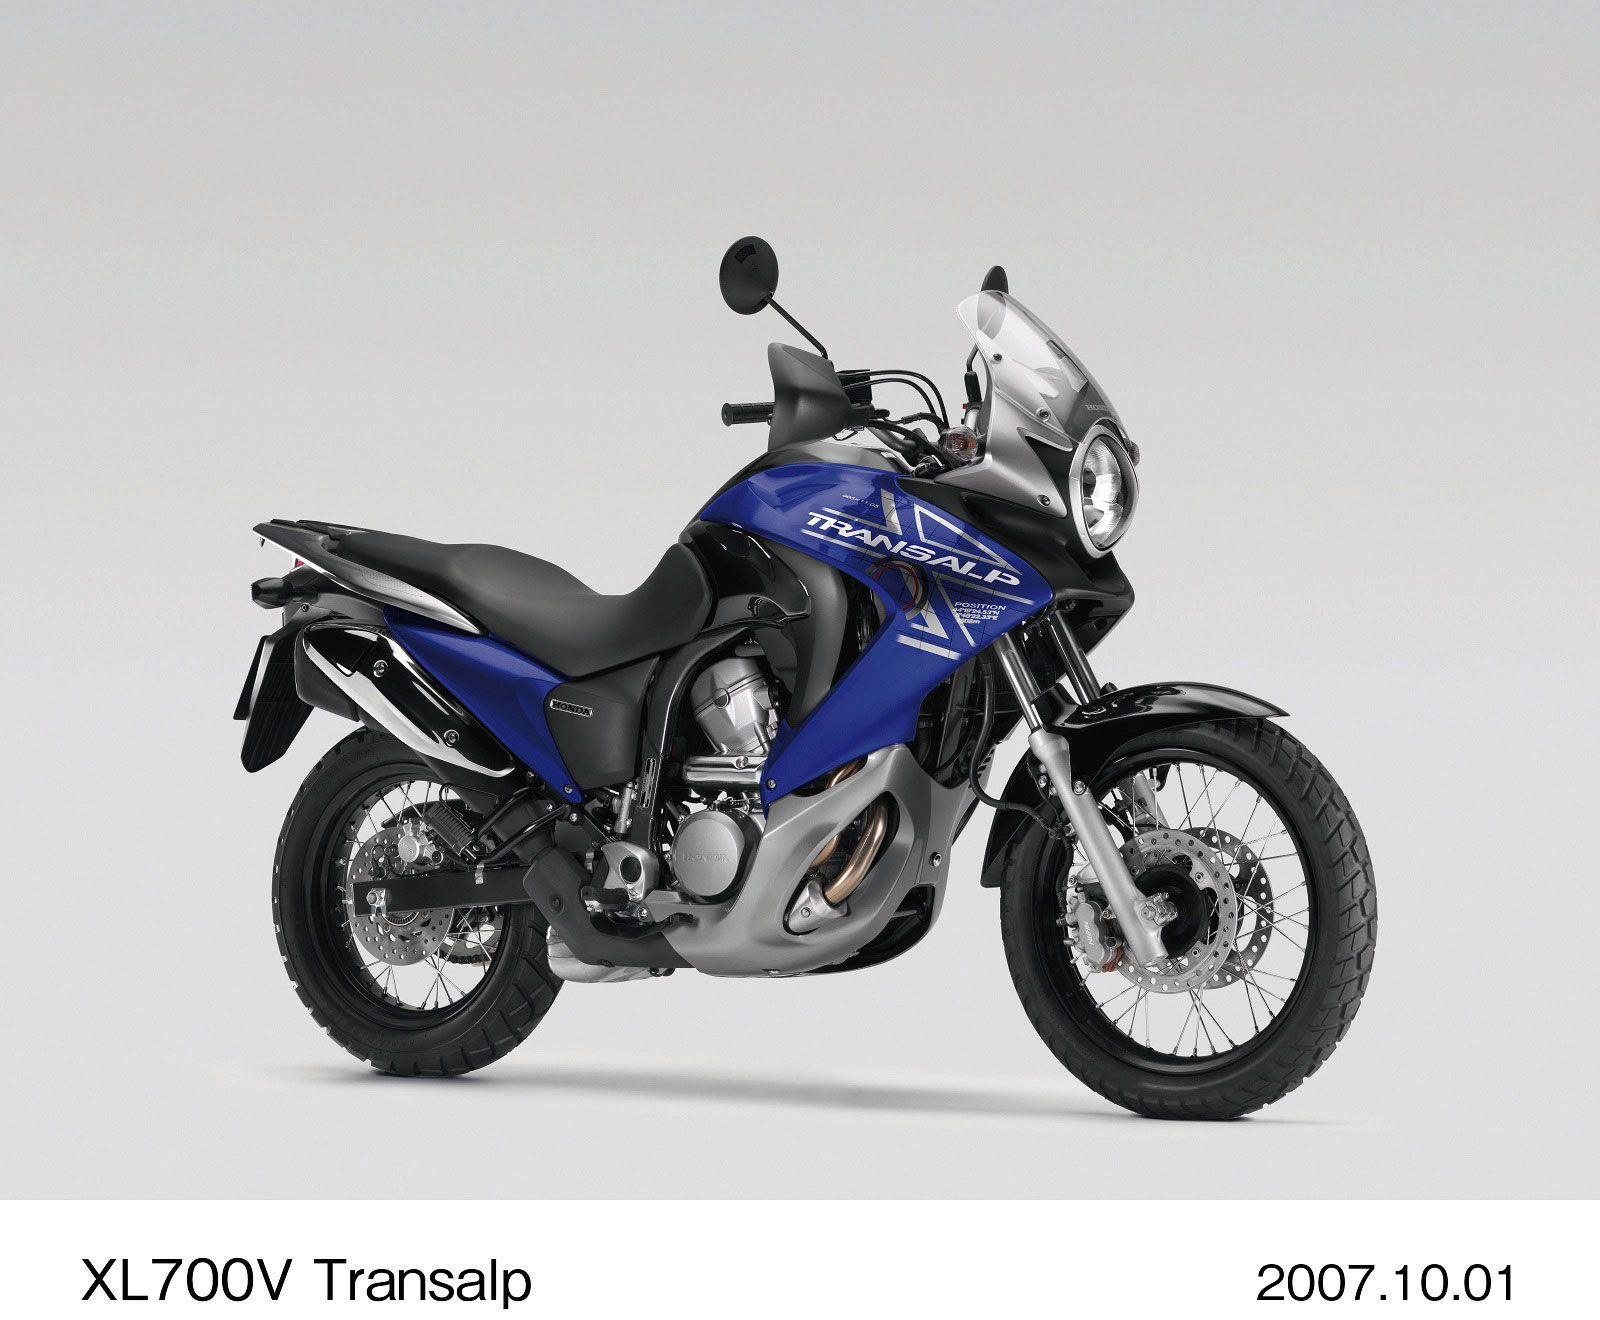 The Transalp was last seen in 700cc guise before disappearing altogether in 2011.